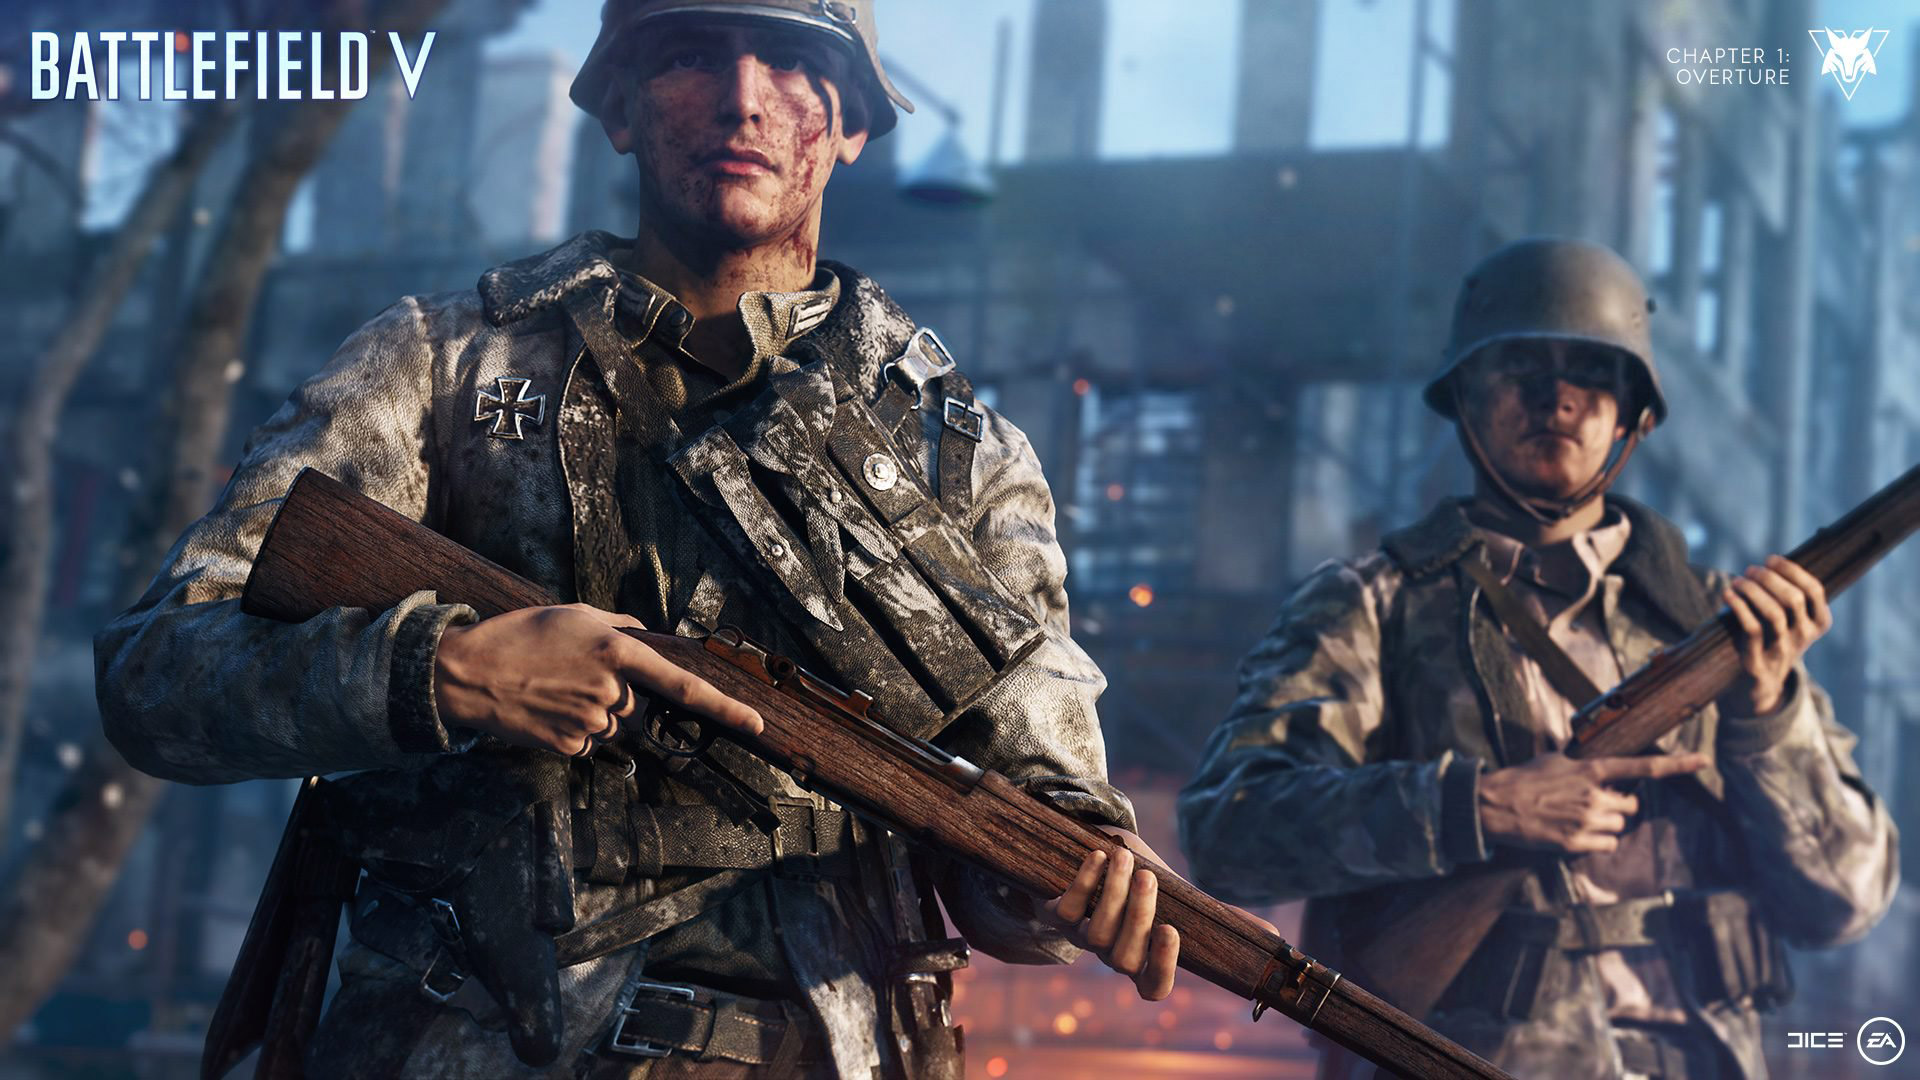 Free Battlefield V Wallpaper in 1920x1080